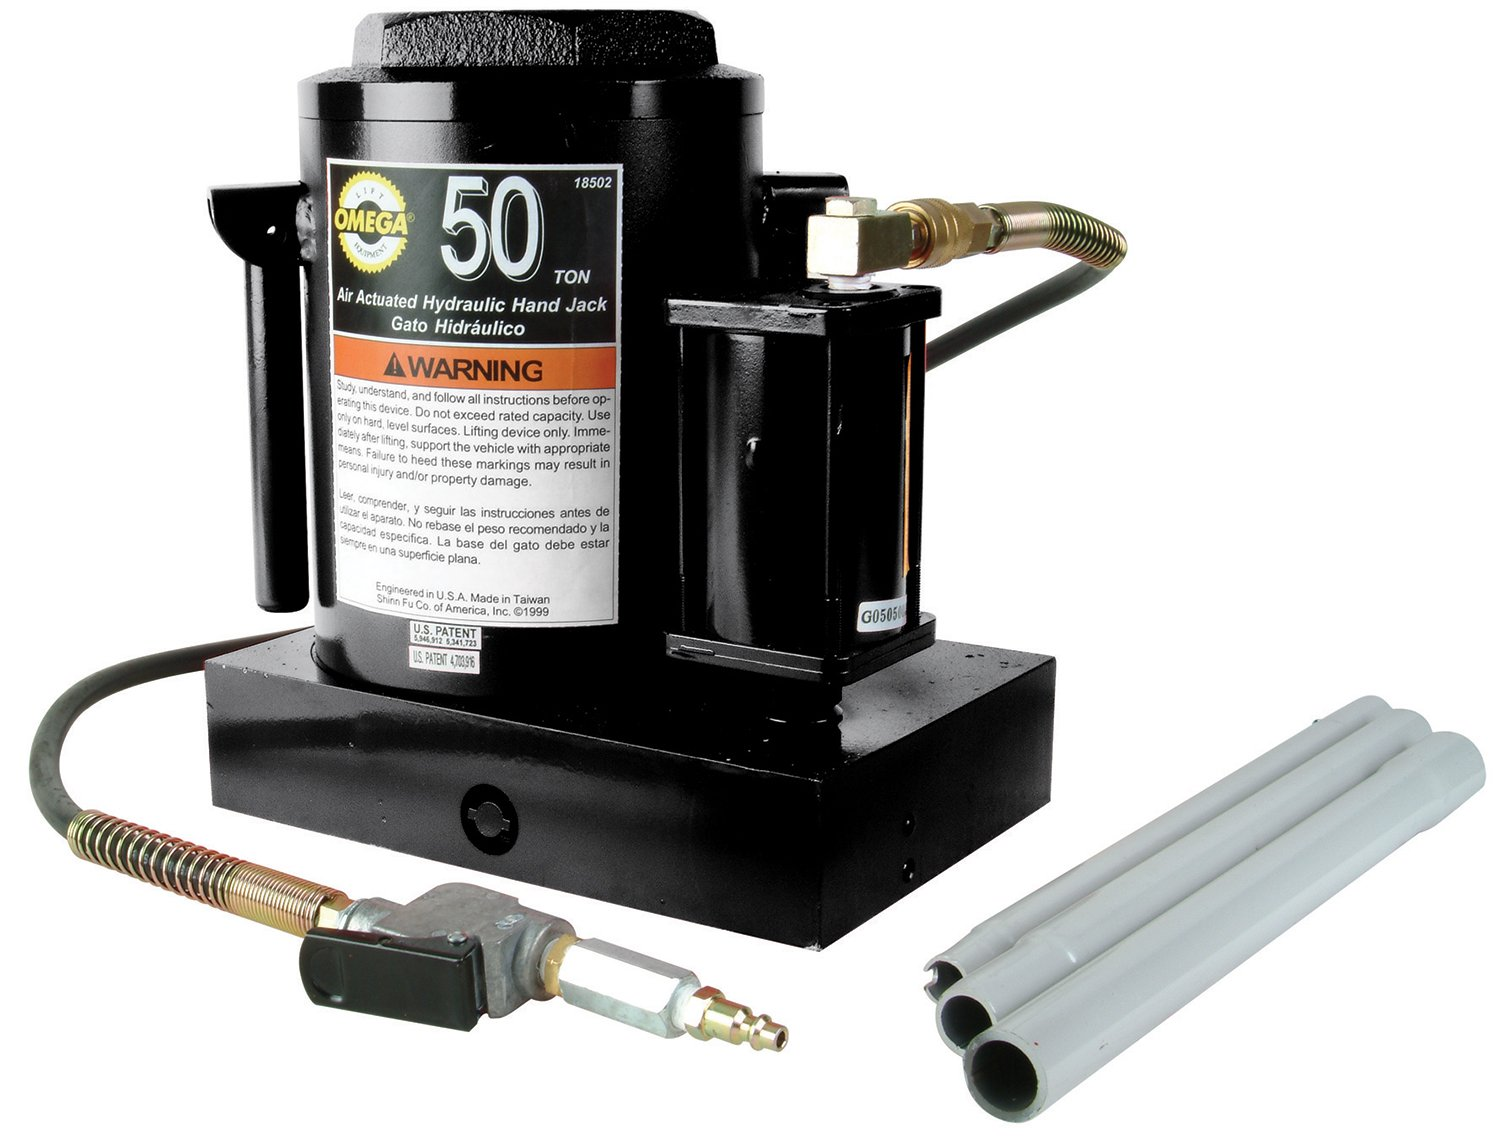 Buy Omega 18502 Black Hydraulic Air Actuated Bottle Jack